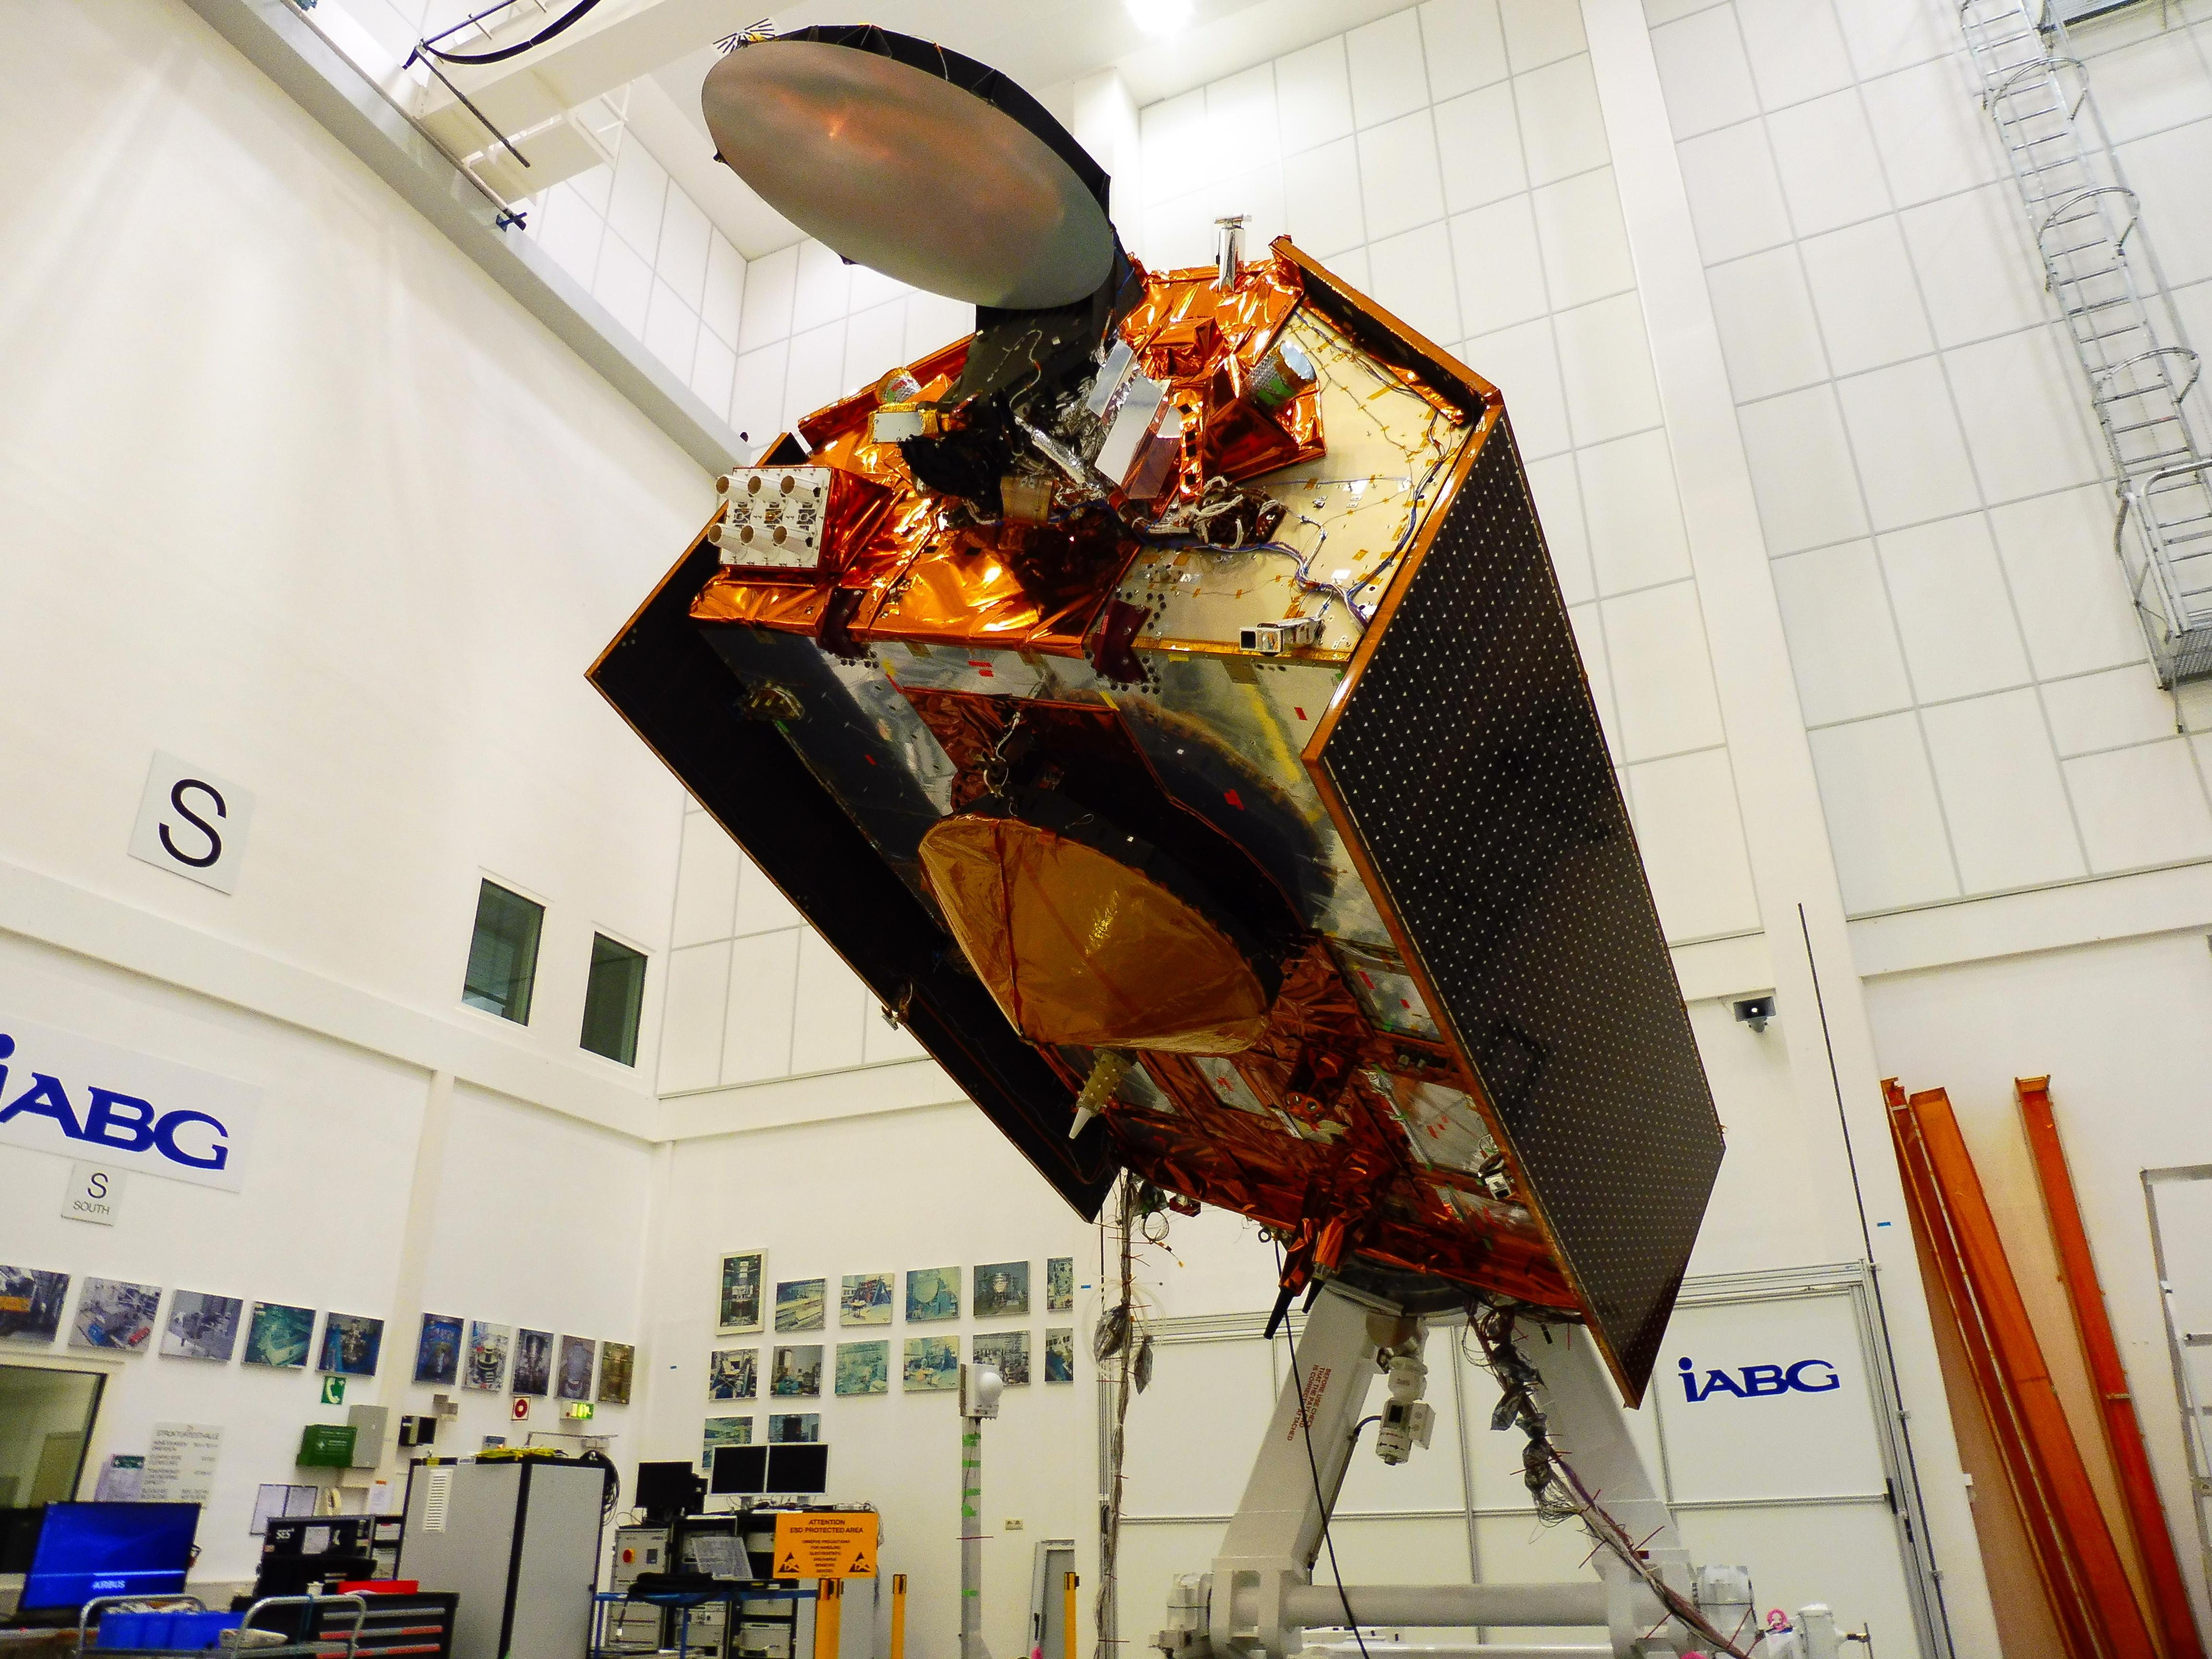 The Sentinel-6A spacecraft sits in its clean room in Germanys IABG space test center, being prepared for a scheduled launch in November 2020 from Vandenberg Air Force Base in California.